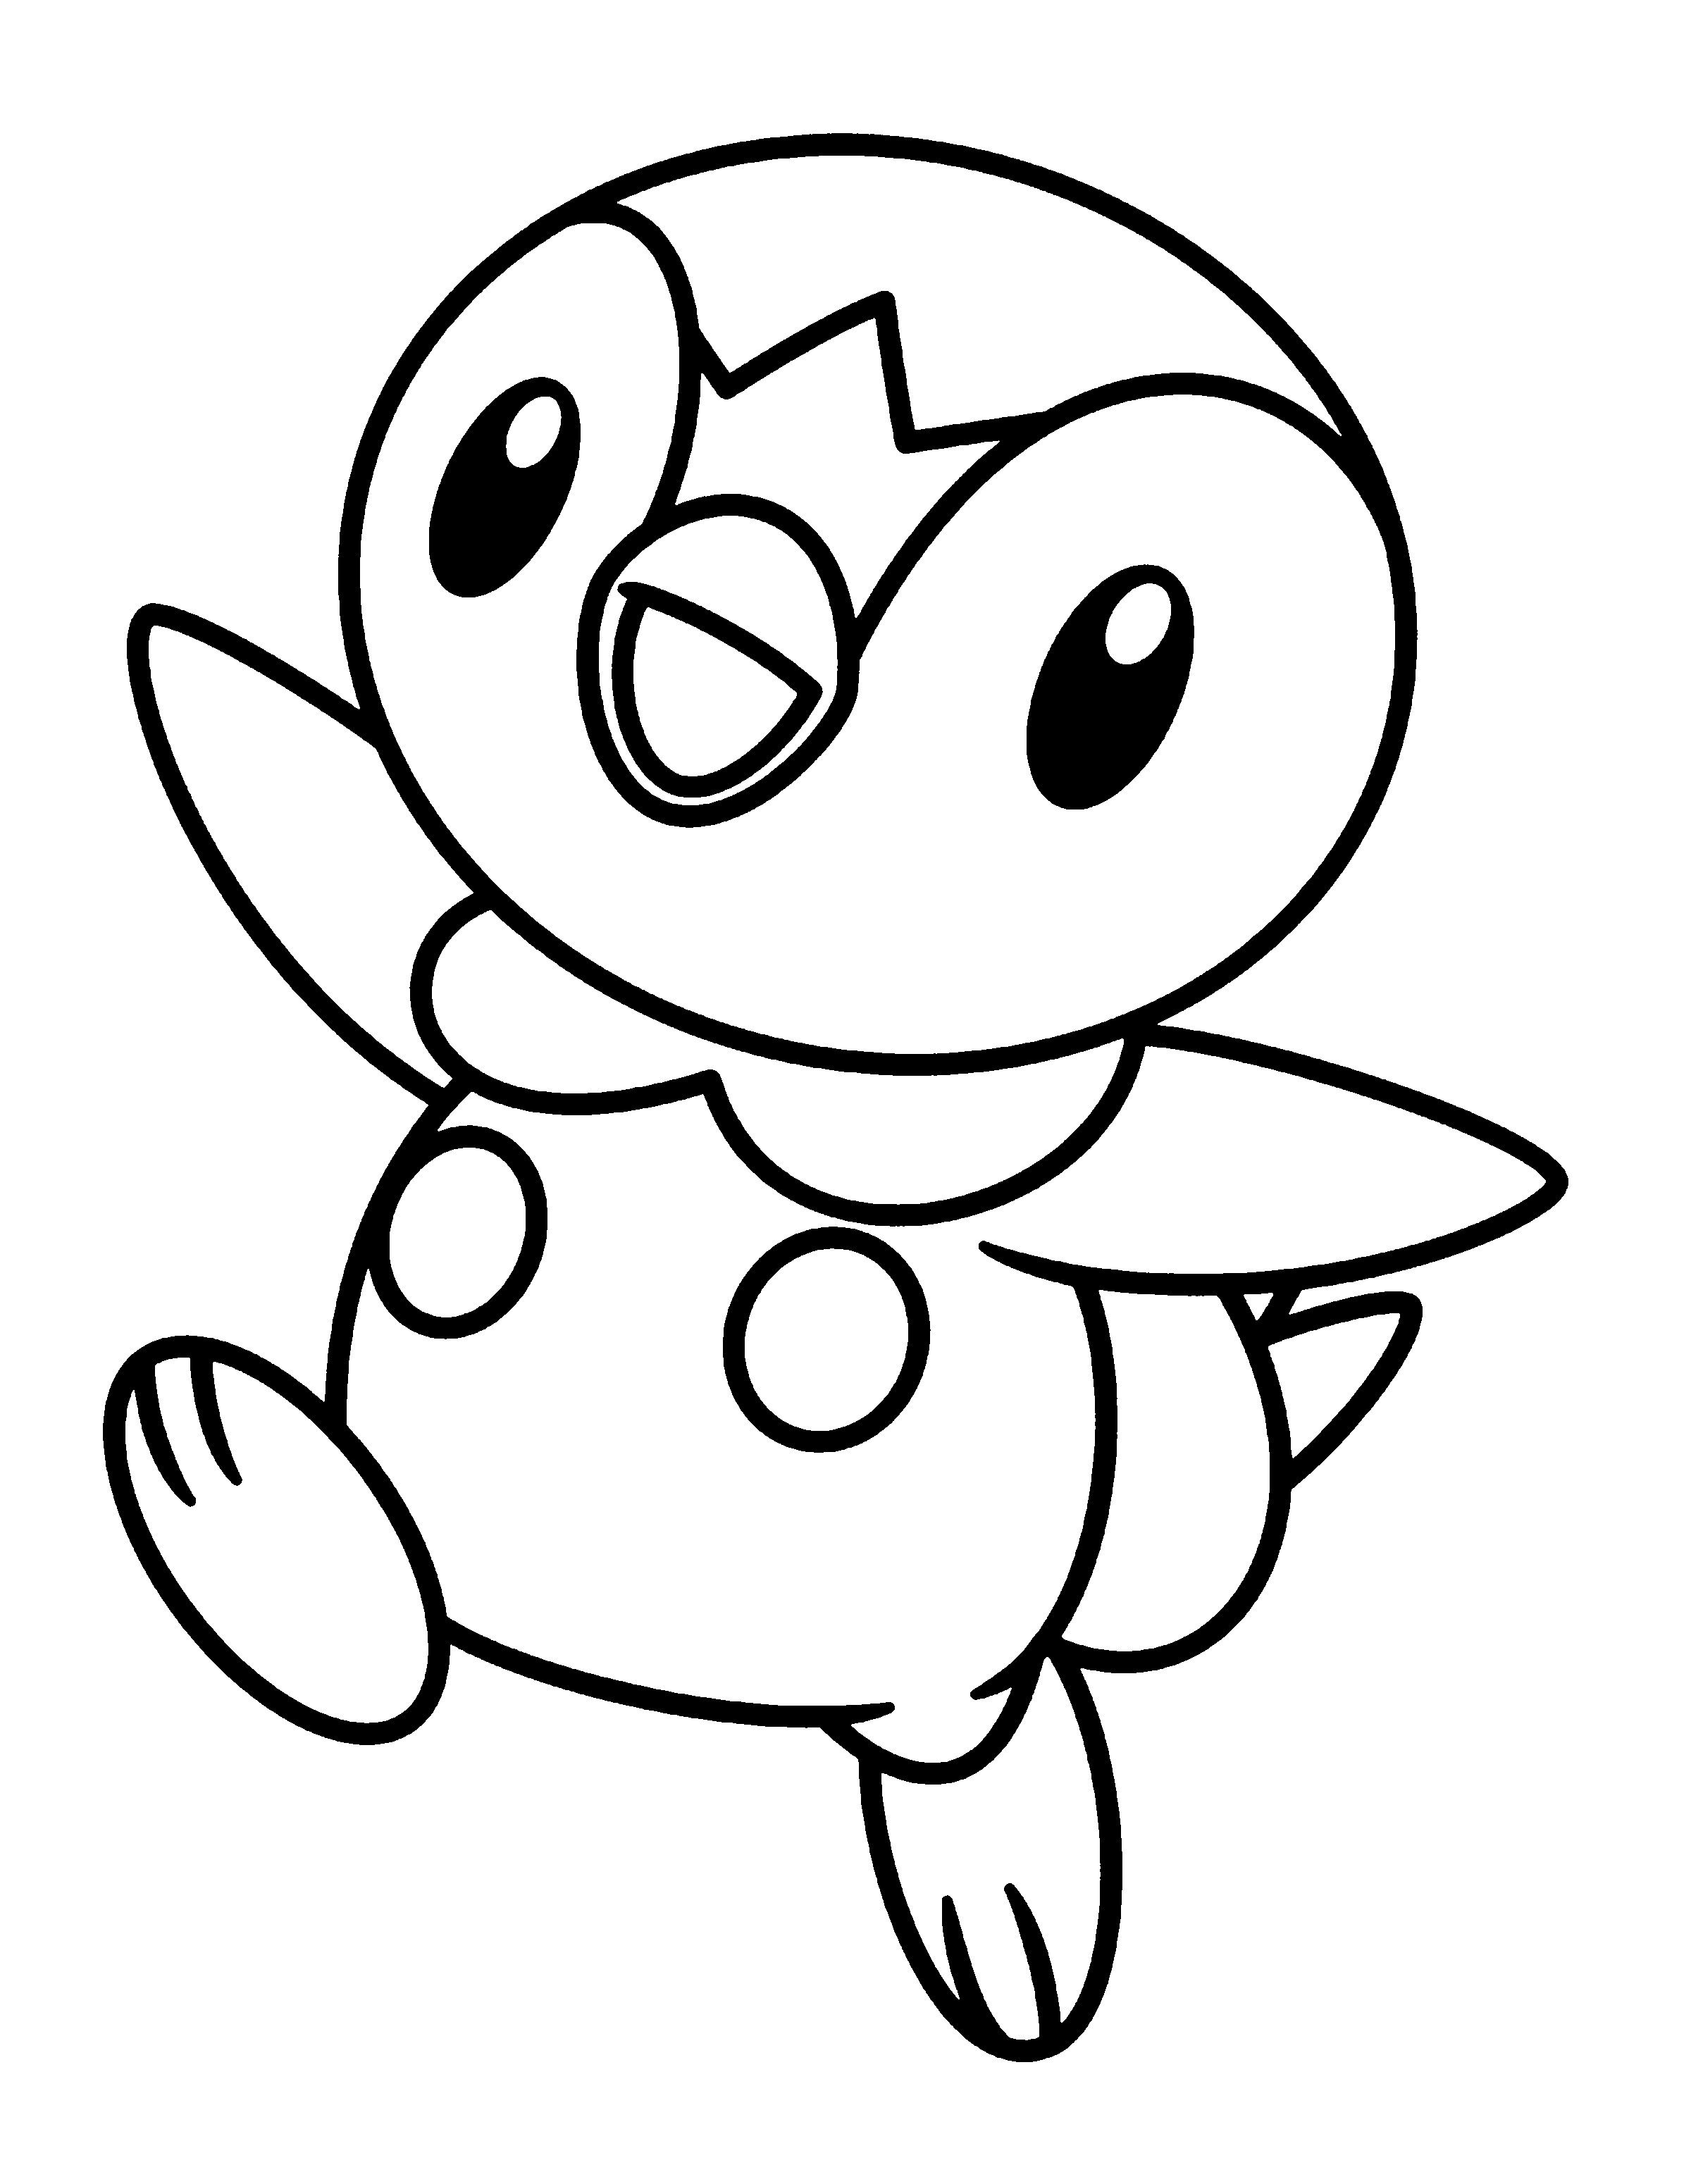 Pokemon Coloring Pages Piplup From The Thousand Photographs On The Net About Pokemon Coloring Pokemon Coloring Pages Pokemon Coloring Cartoon Coloring Pages